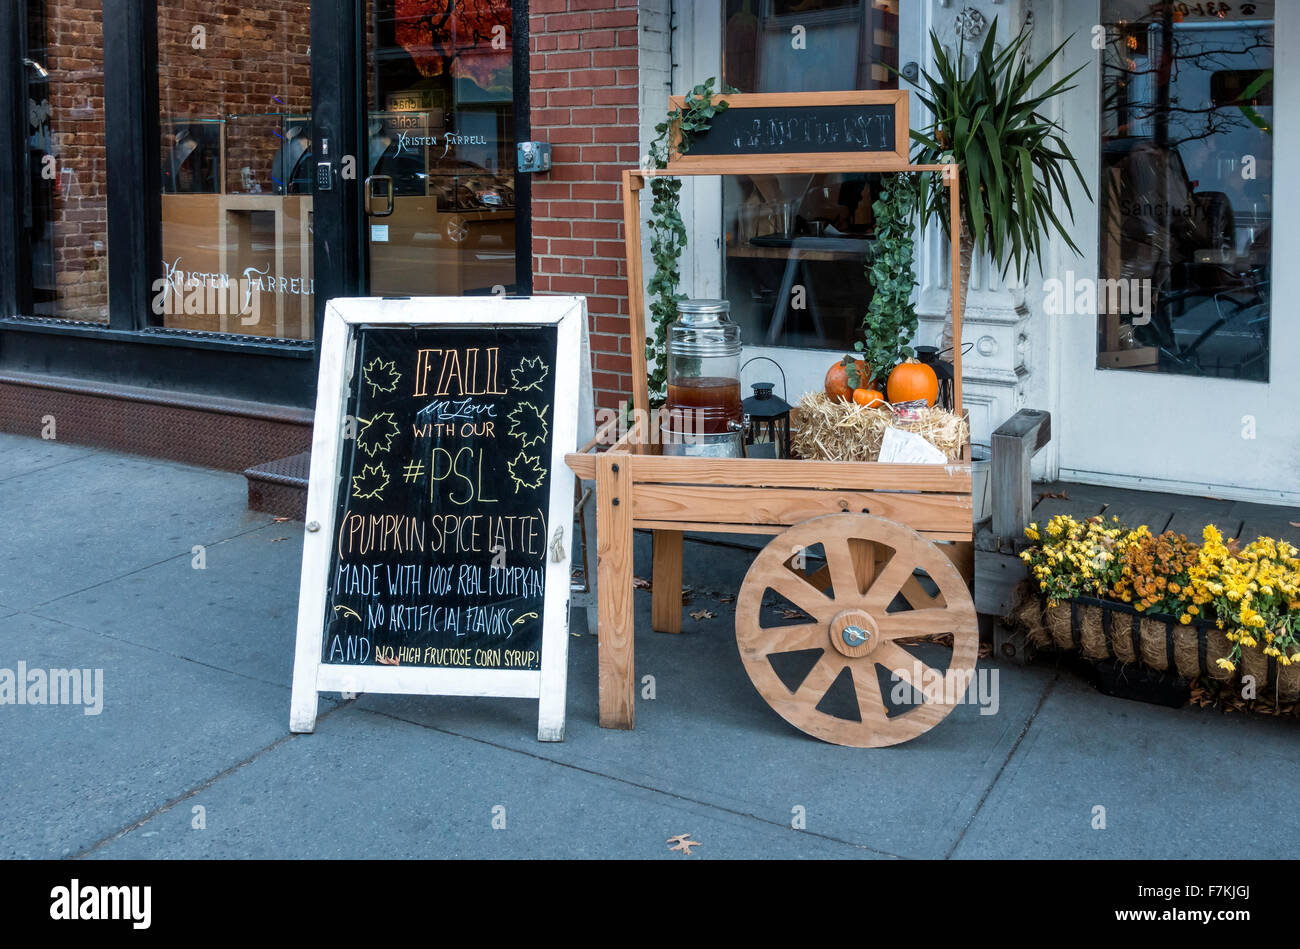 PSL (Pumpkin Spice Latte) for sale outside a bar restaurant in Soho in New York City - Stock Image